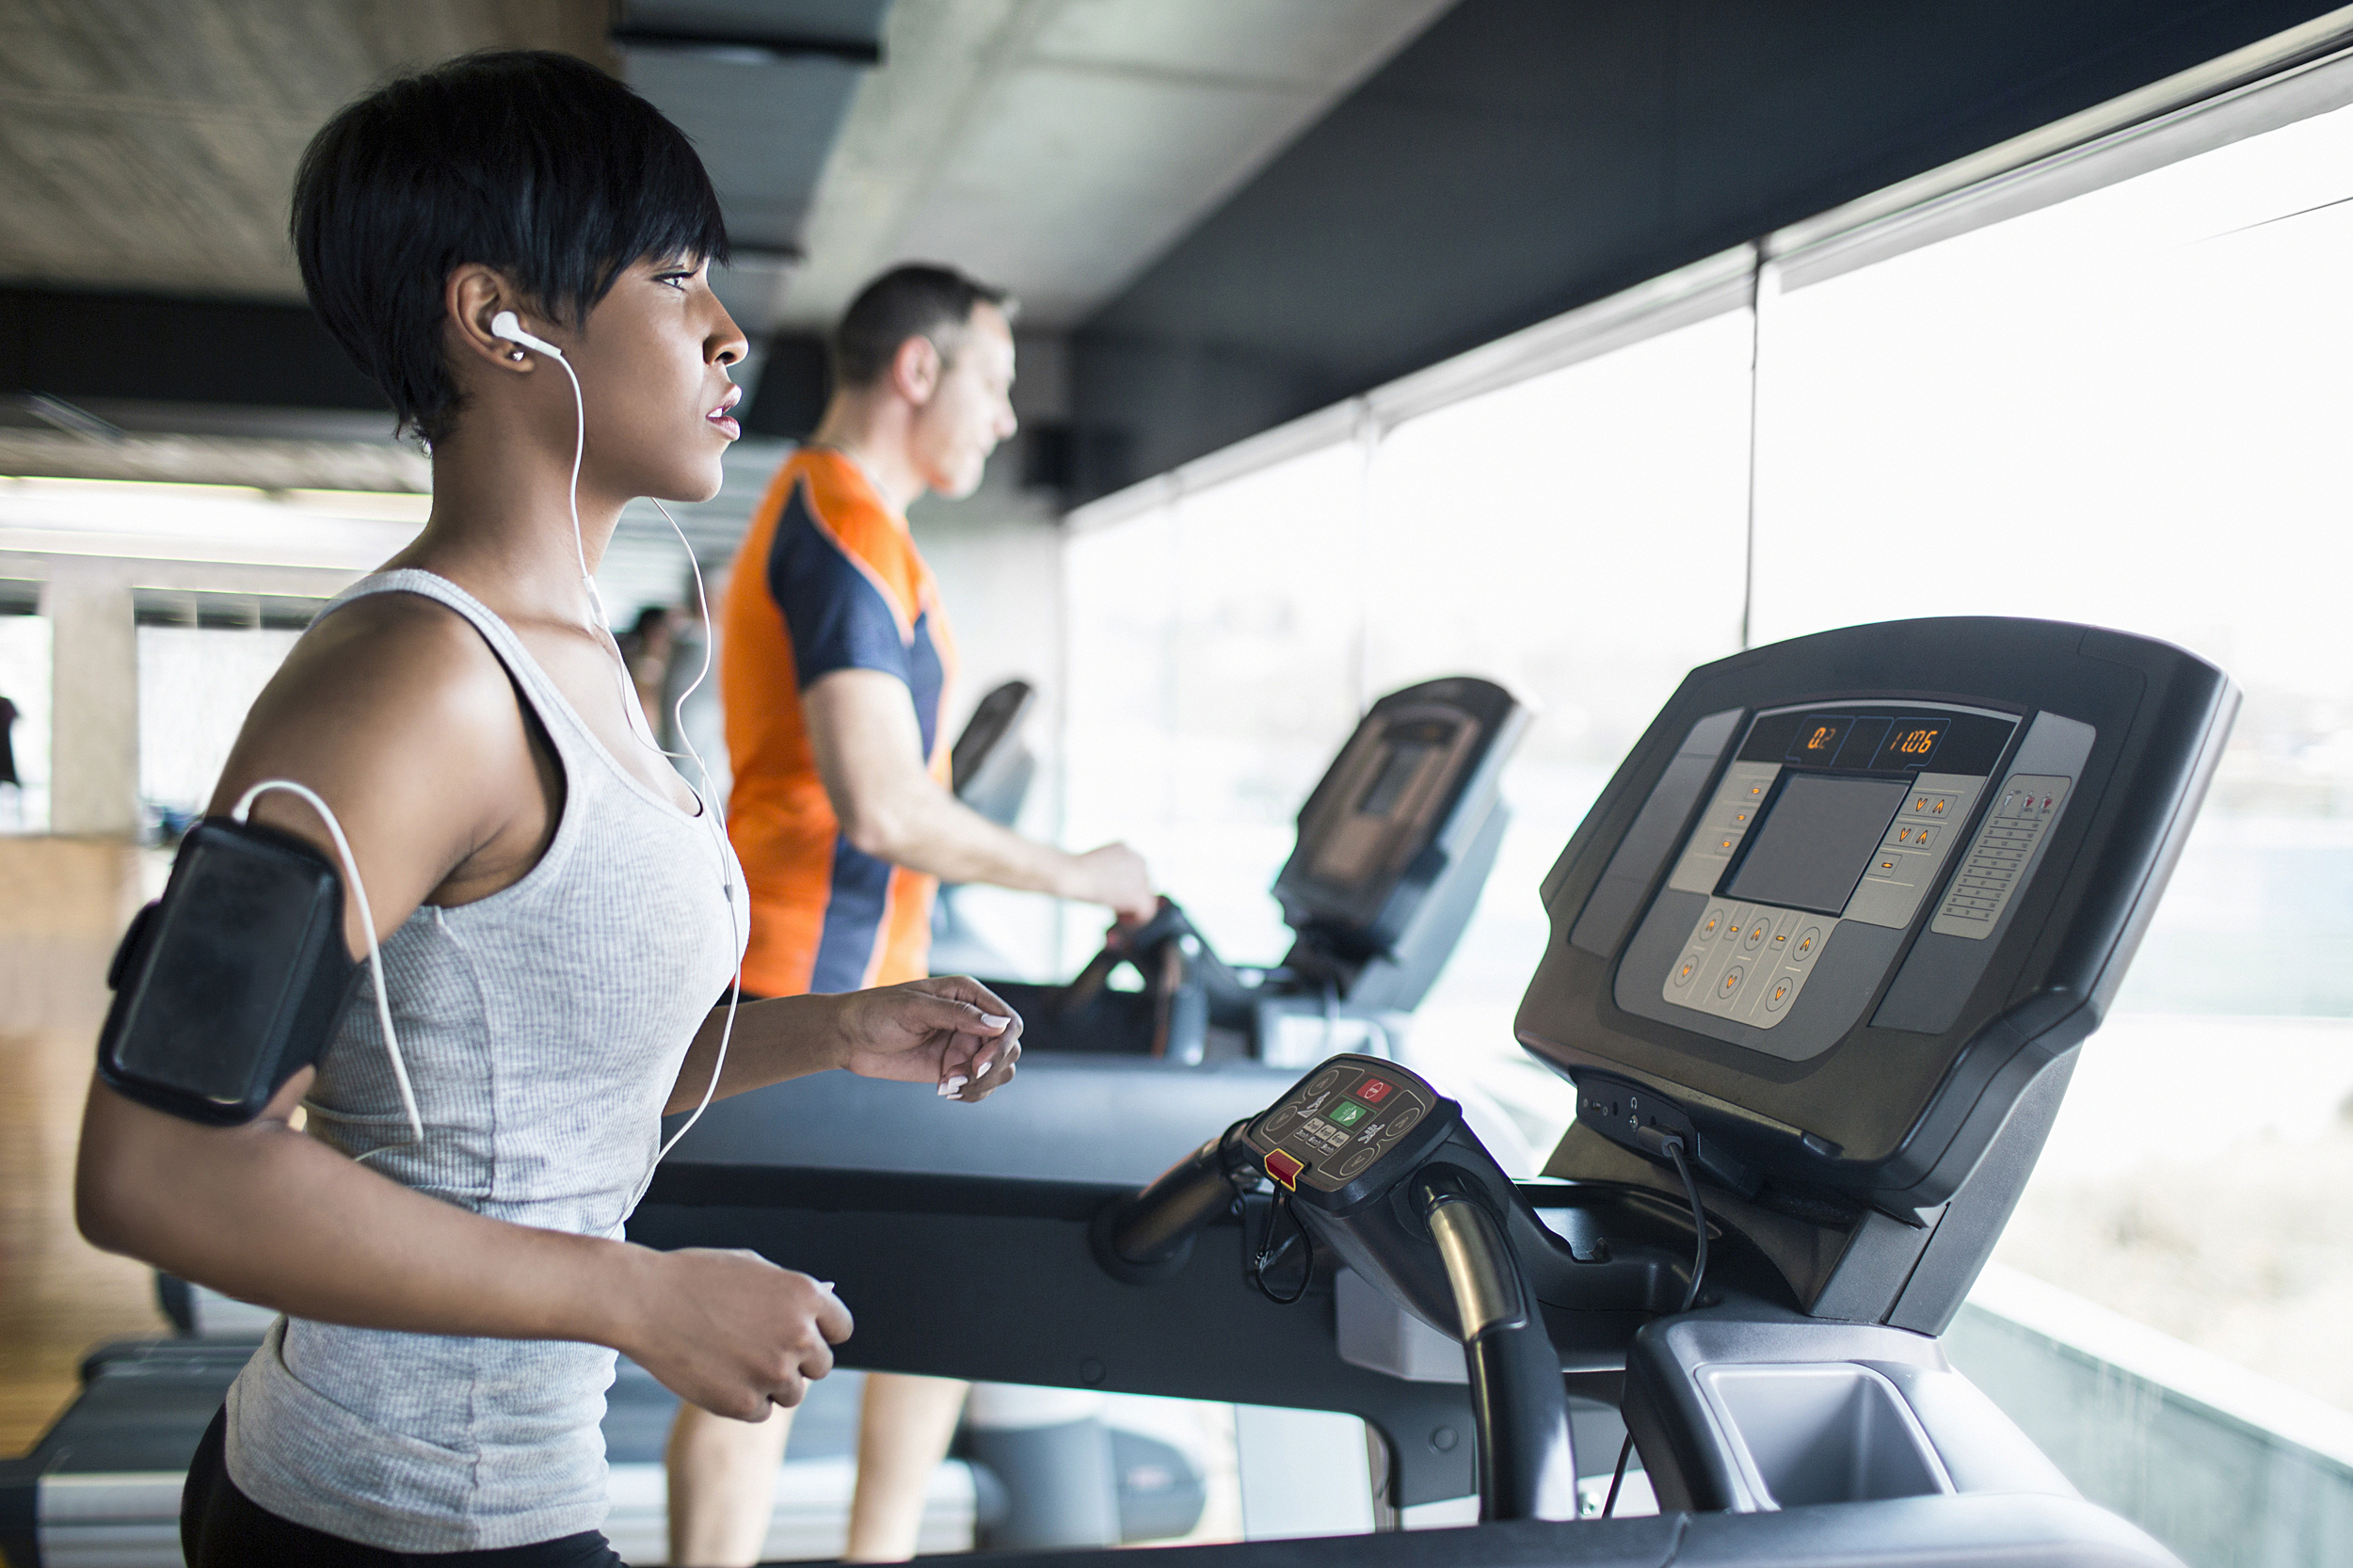 Where you work out says a lot about your personality, study says